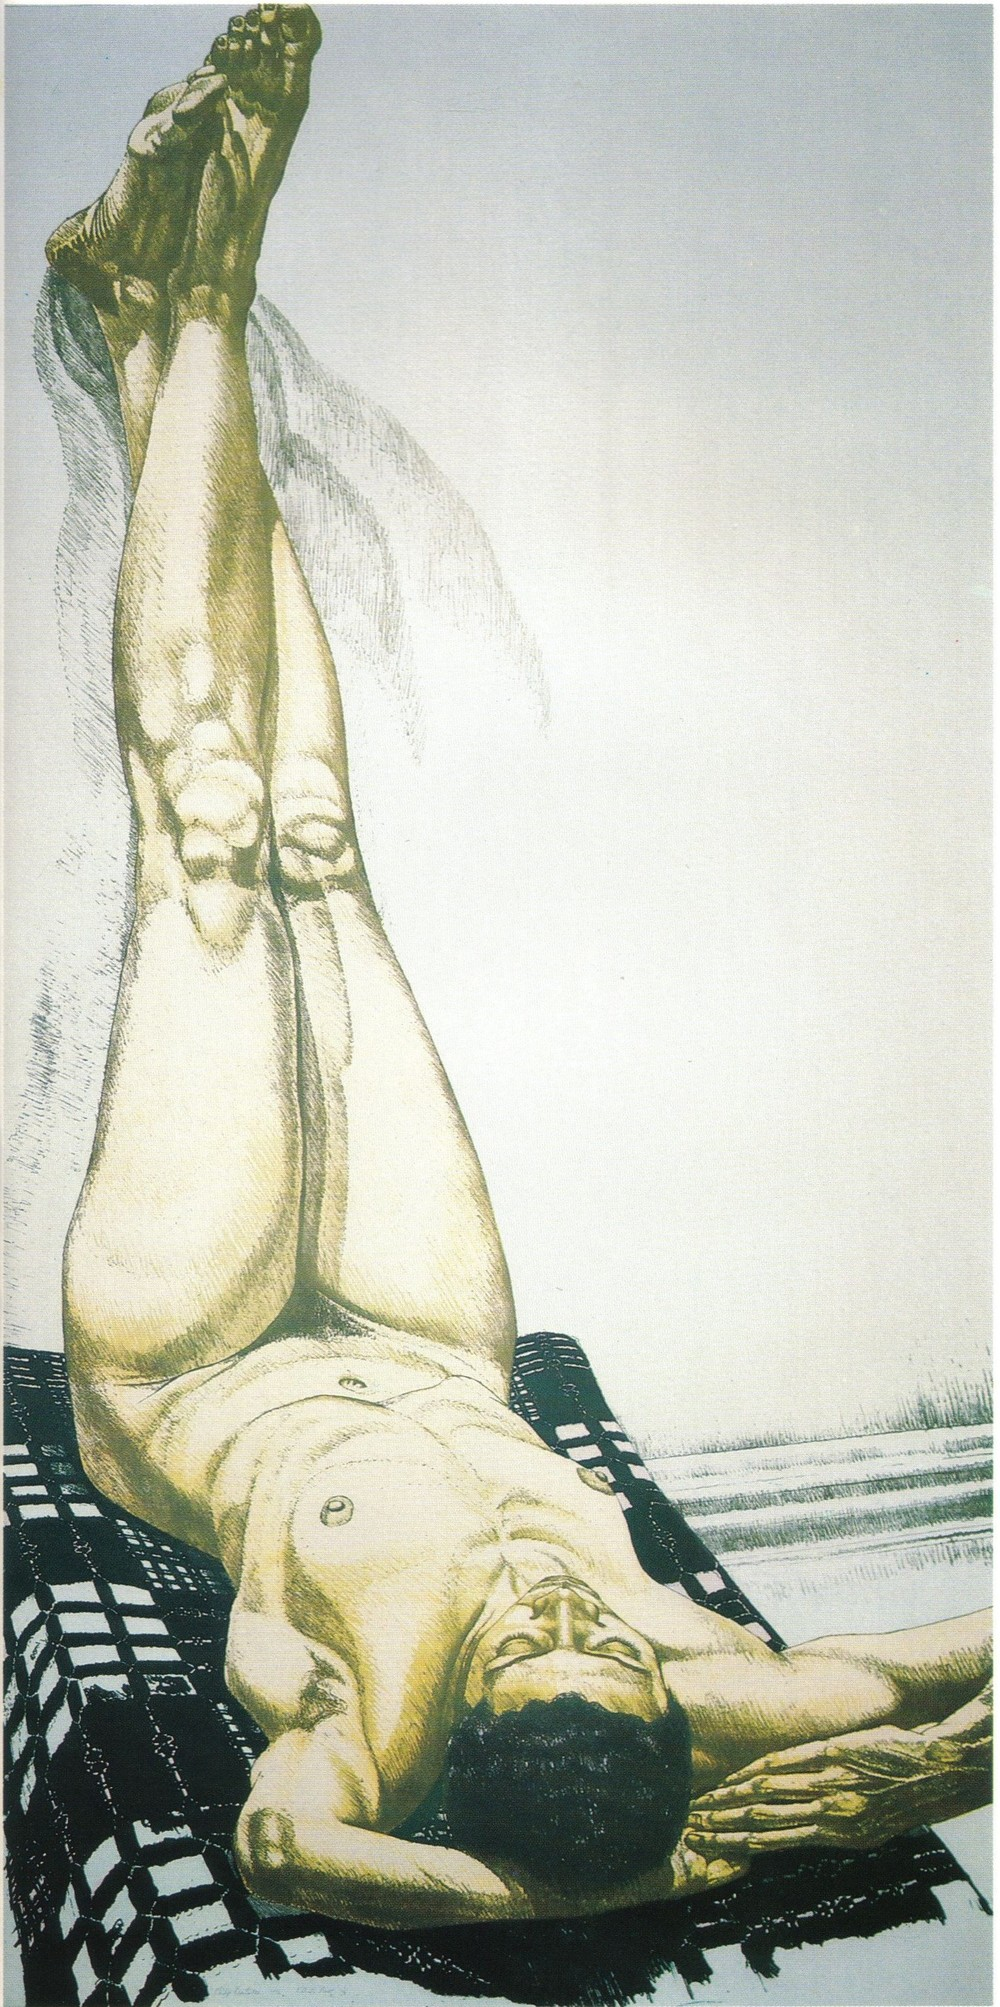 1976, Female Nude with Legs Up, Color Lithograph, 28.375x14.25, 1976.jpg